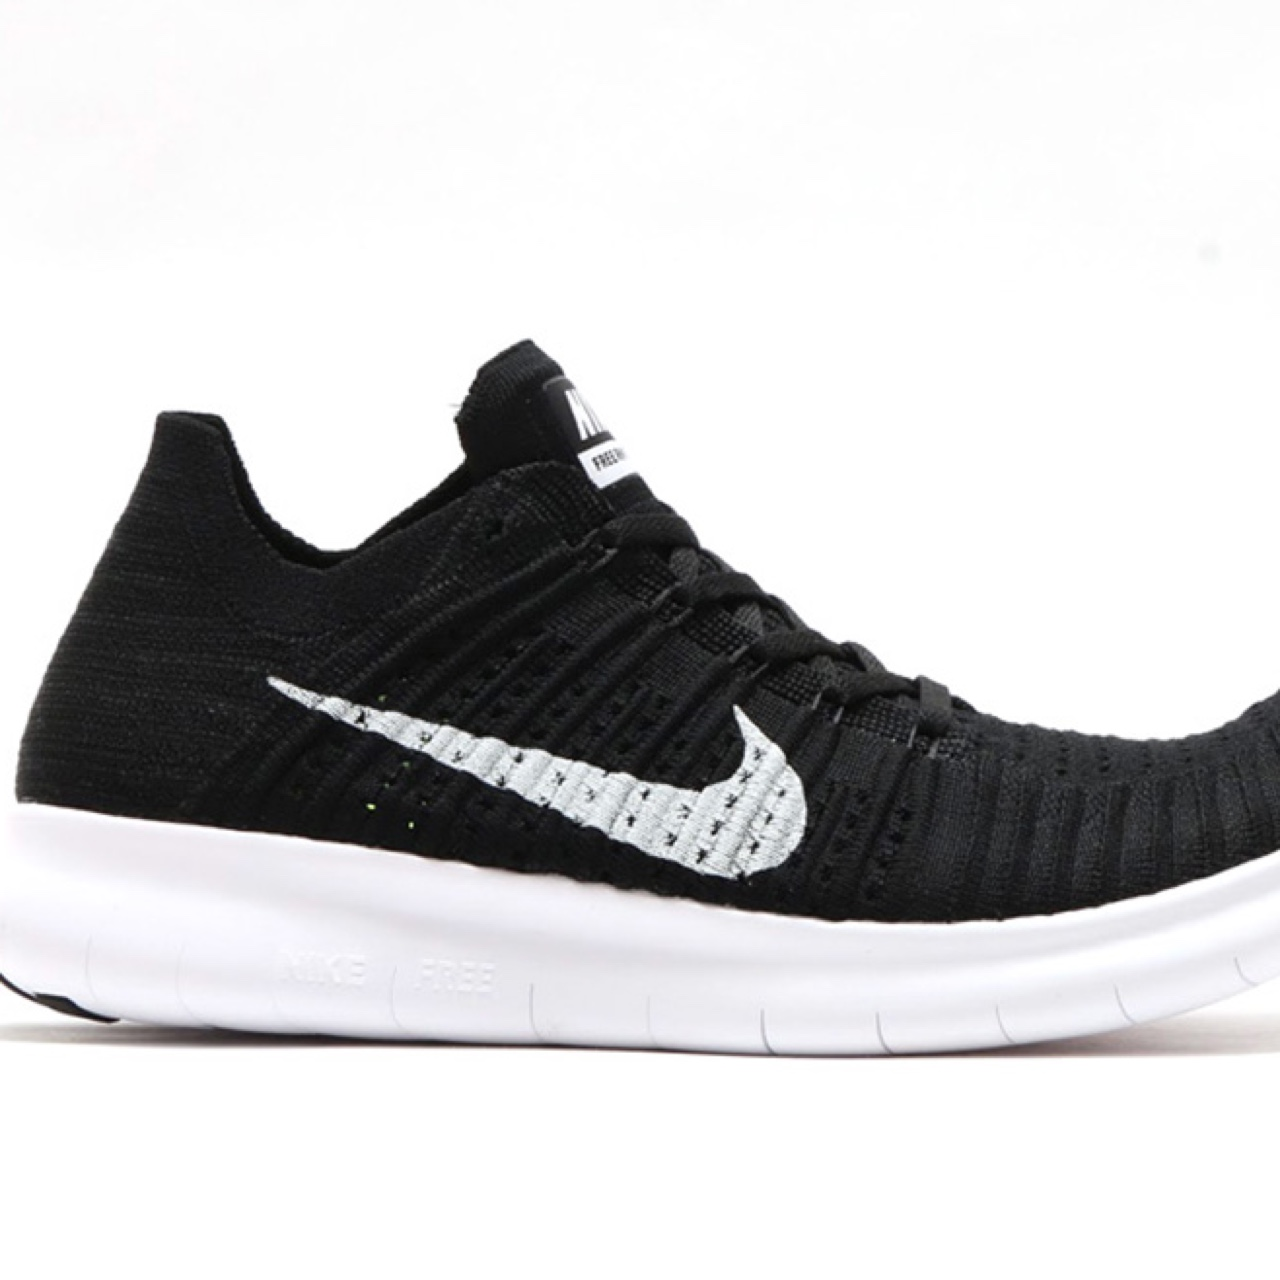 official photos acdeb 3971f Nike Free RN Flyknit trainers women's black size 4.5... - Depop